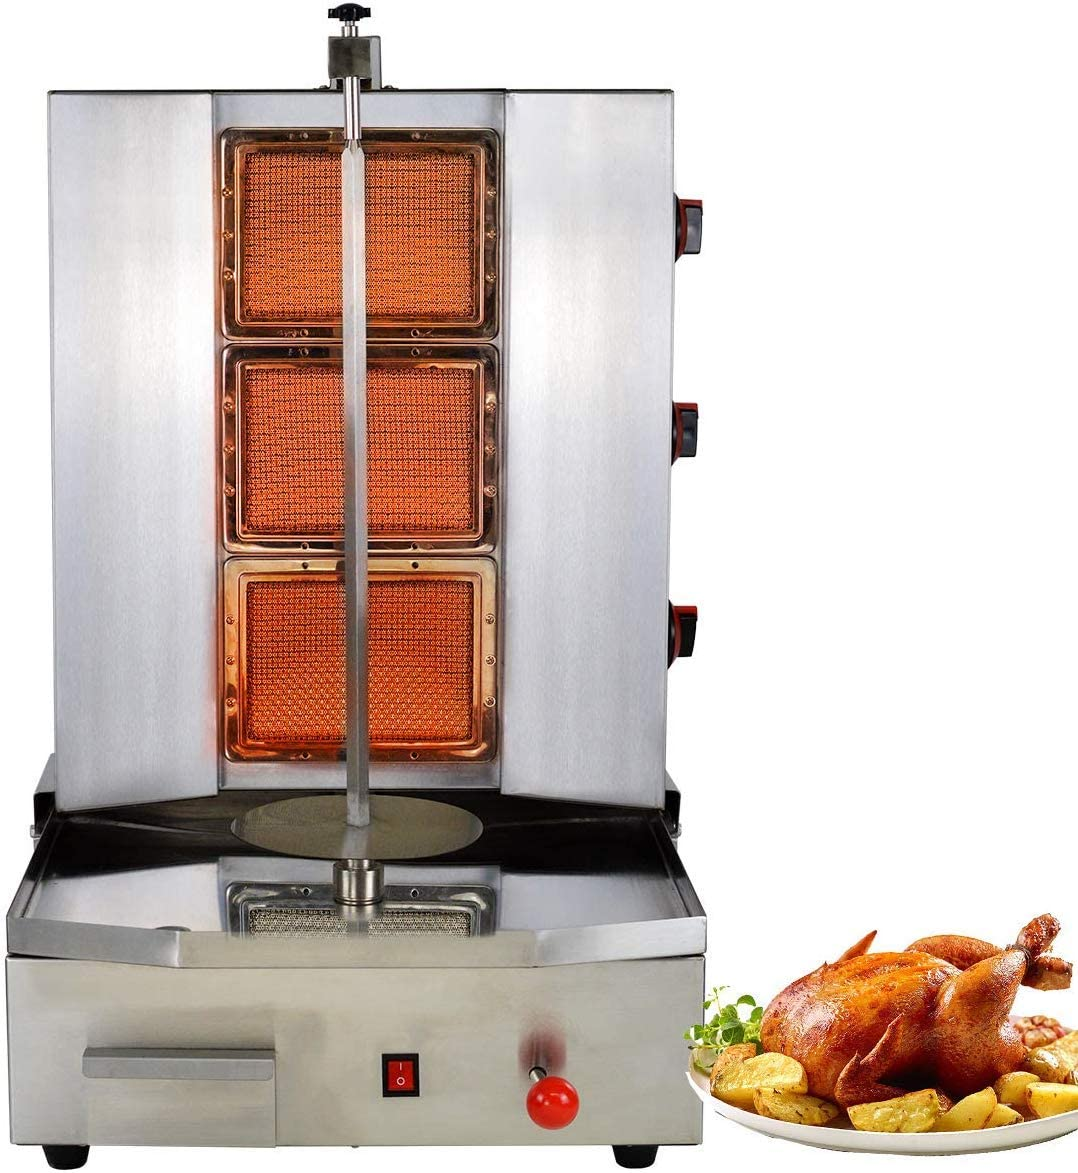 Libai Commercial Shawarma Grill Doner Kebab Propane Gas Machine 3 Burner Gyro Meat Automatic Spinning Vertical Broiler Holder With Meat 25lbs Capacity for Restaurant Home Kitchen Use